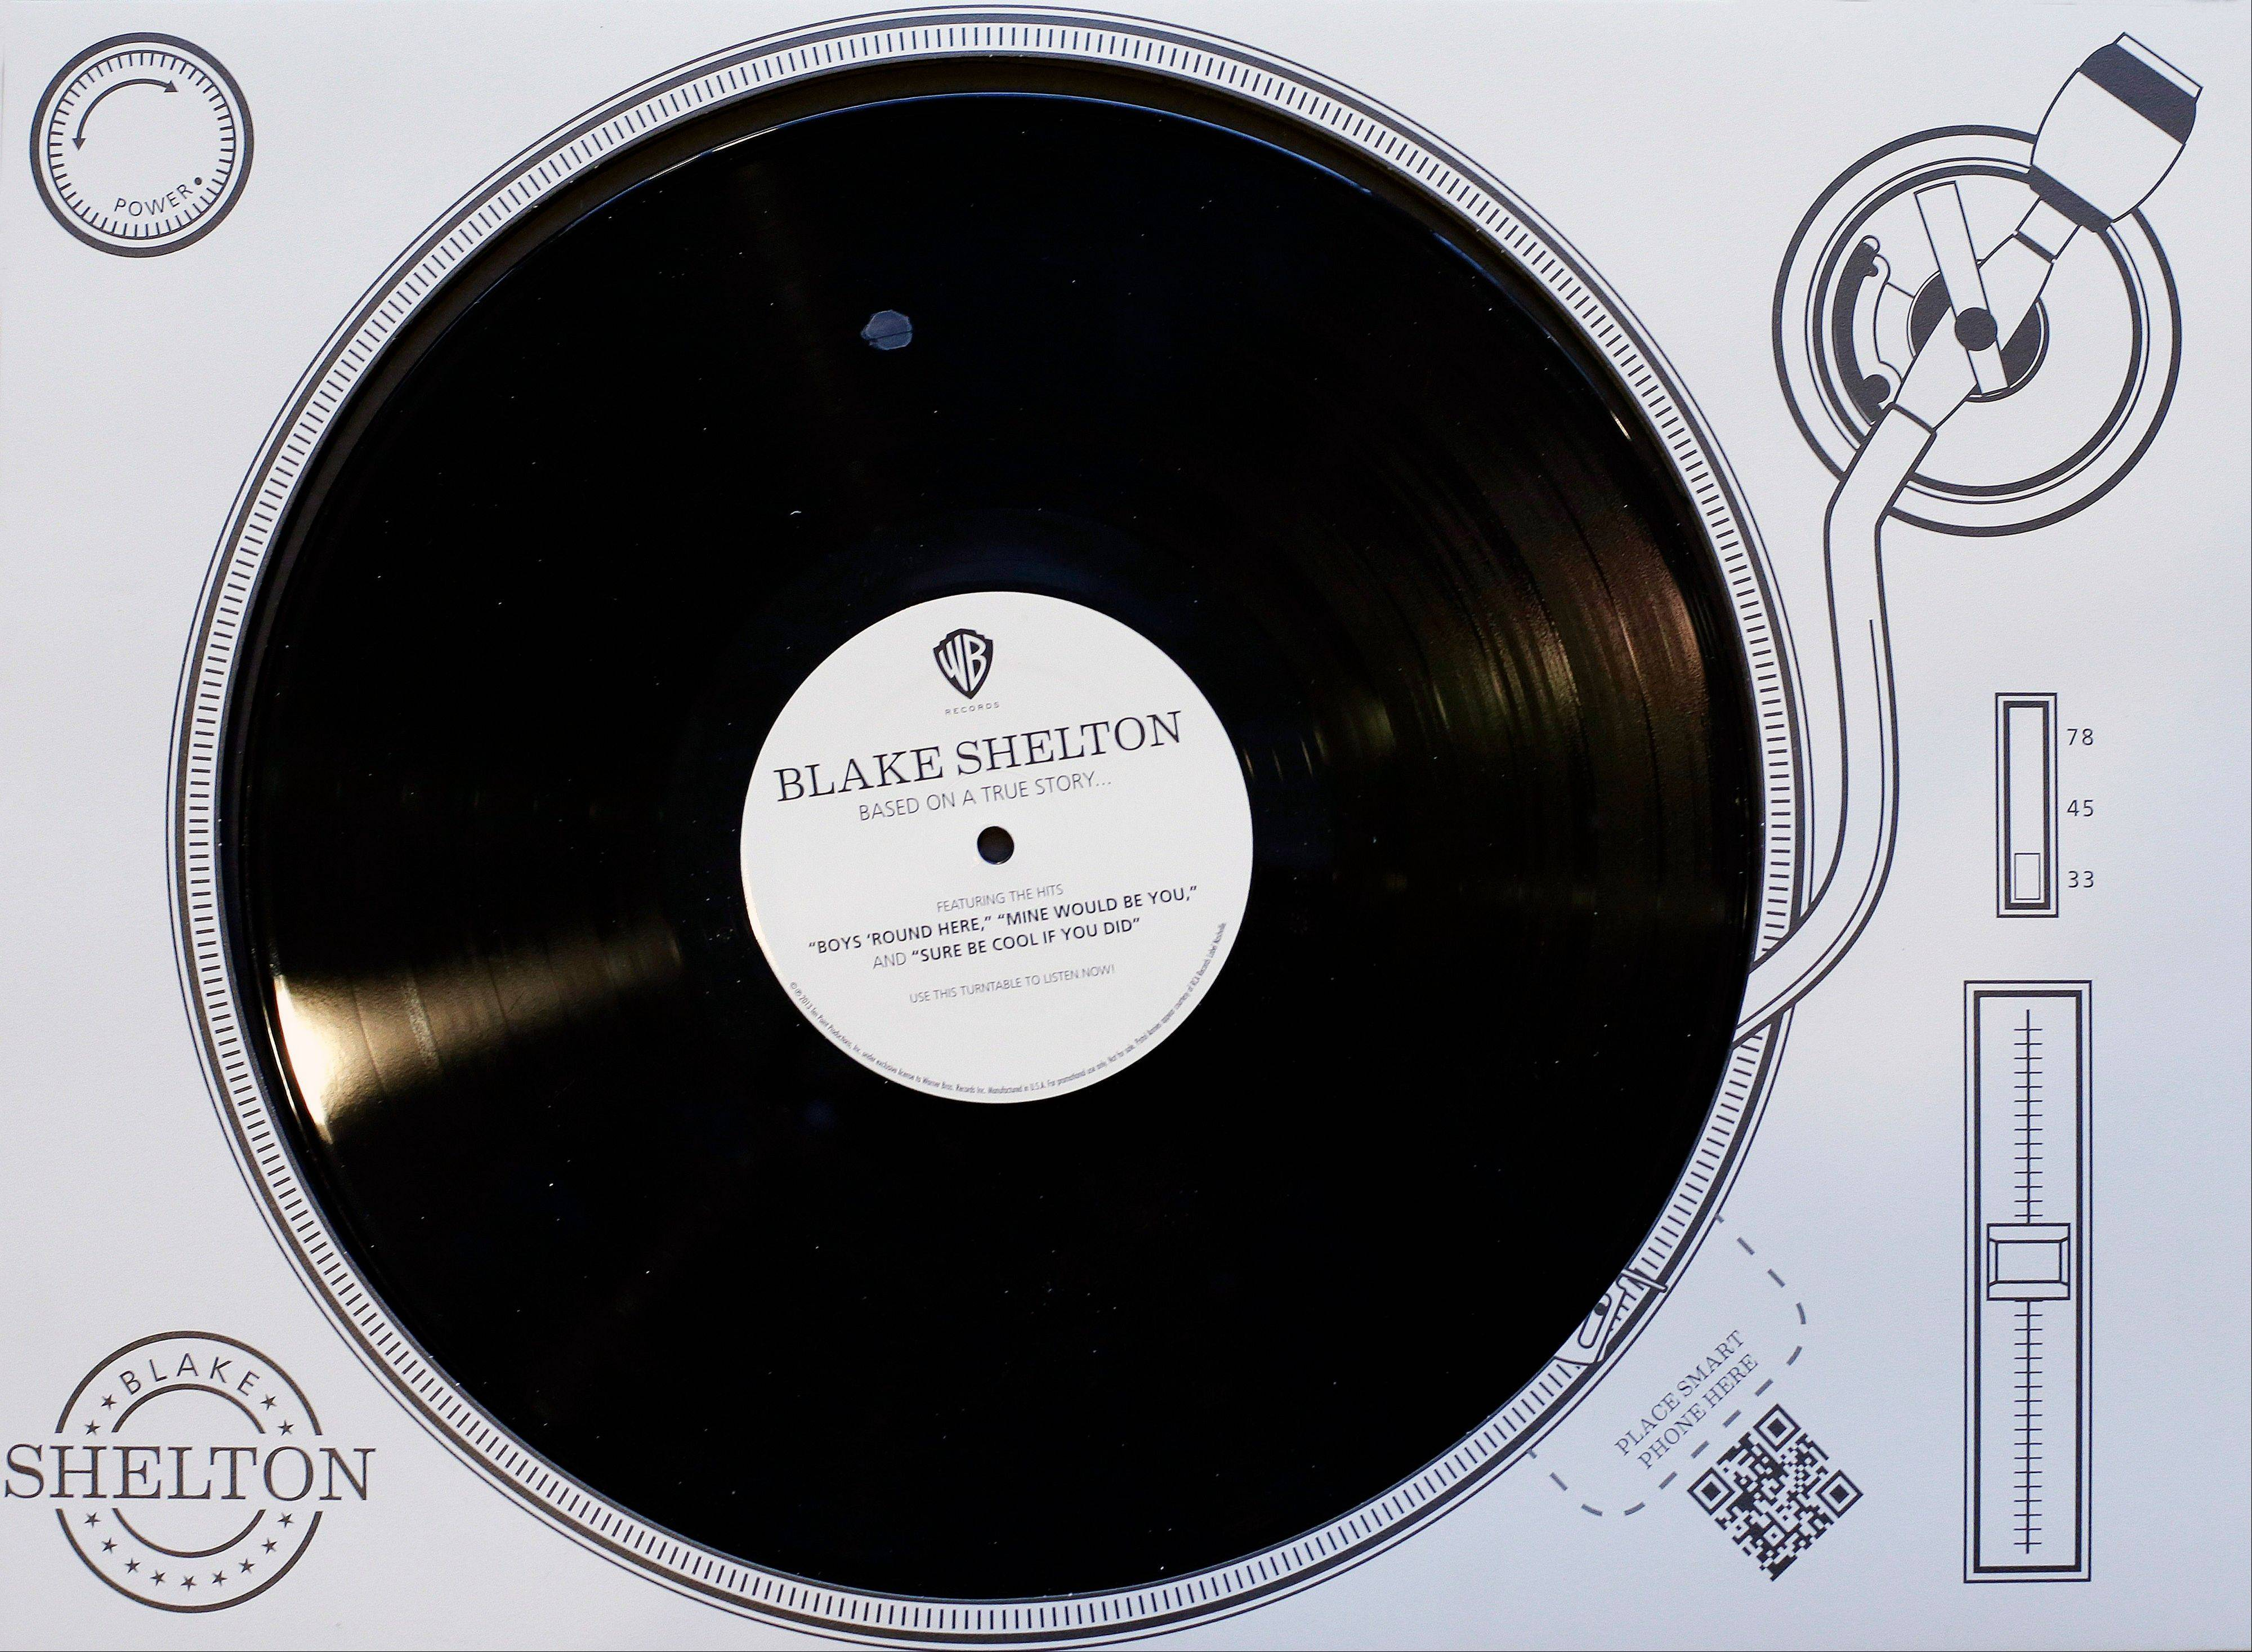 This virtual record player promoting Blake Shelton was produced to influence voters of the CMA Awards, which takes place Wednesday. The CMA encourages artists and their labels to educate voters, allowing three email blasts and one mailed product a year.